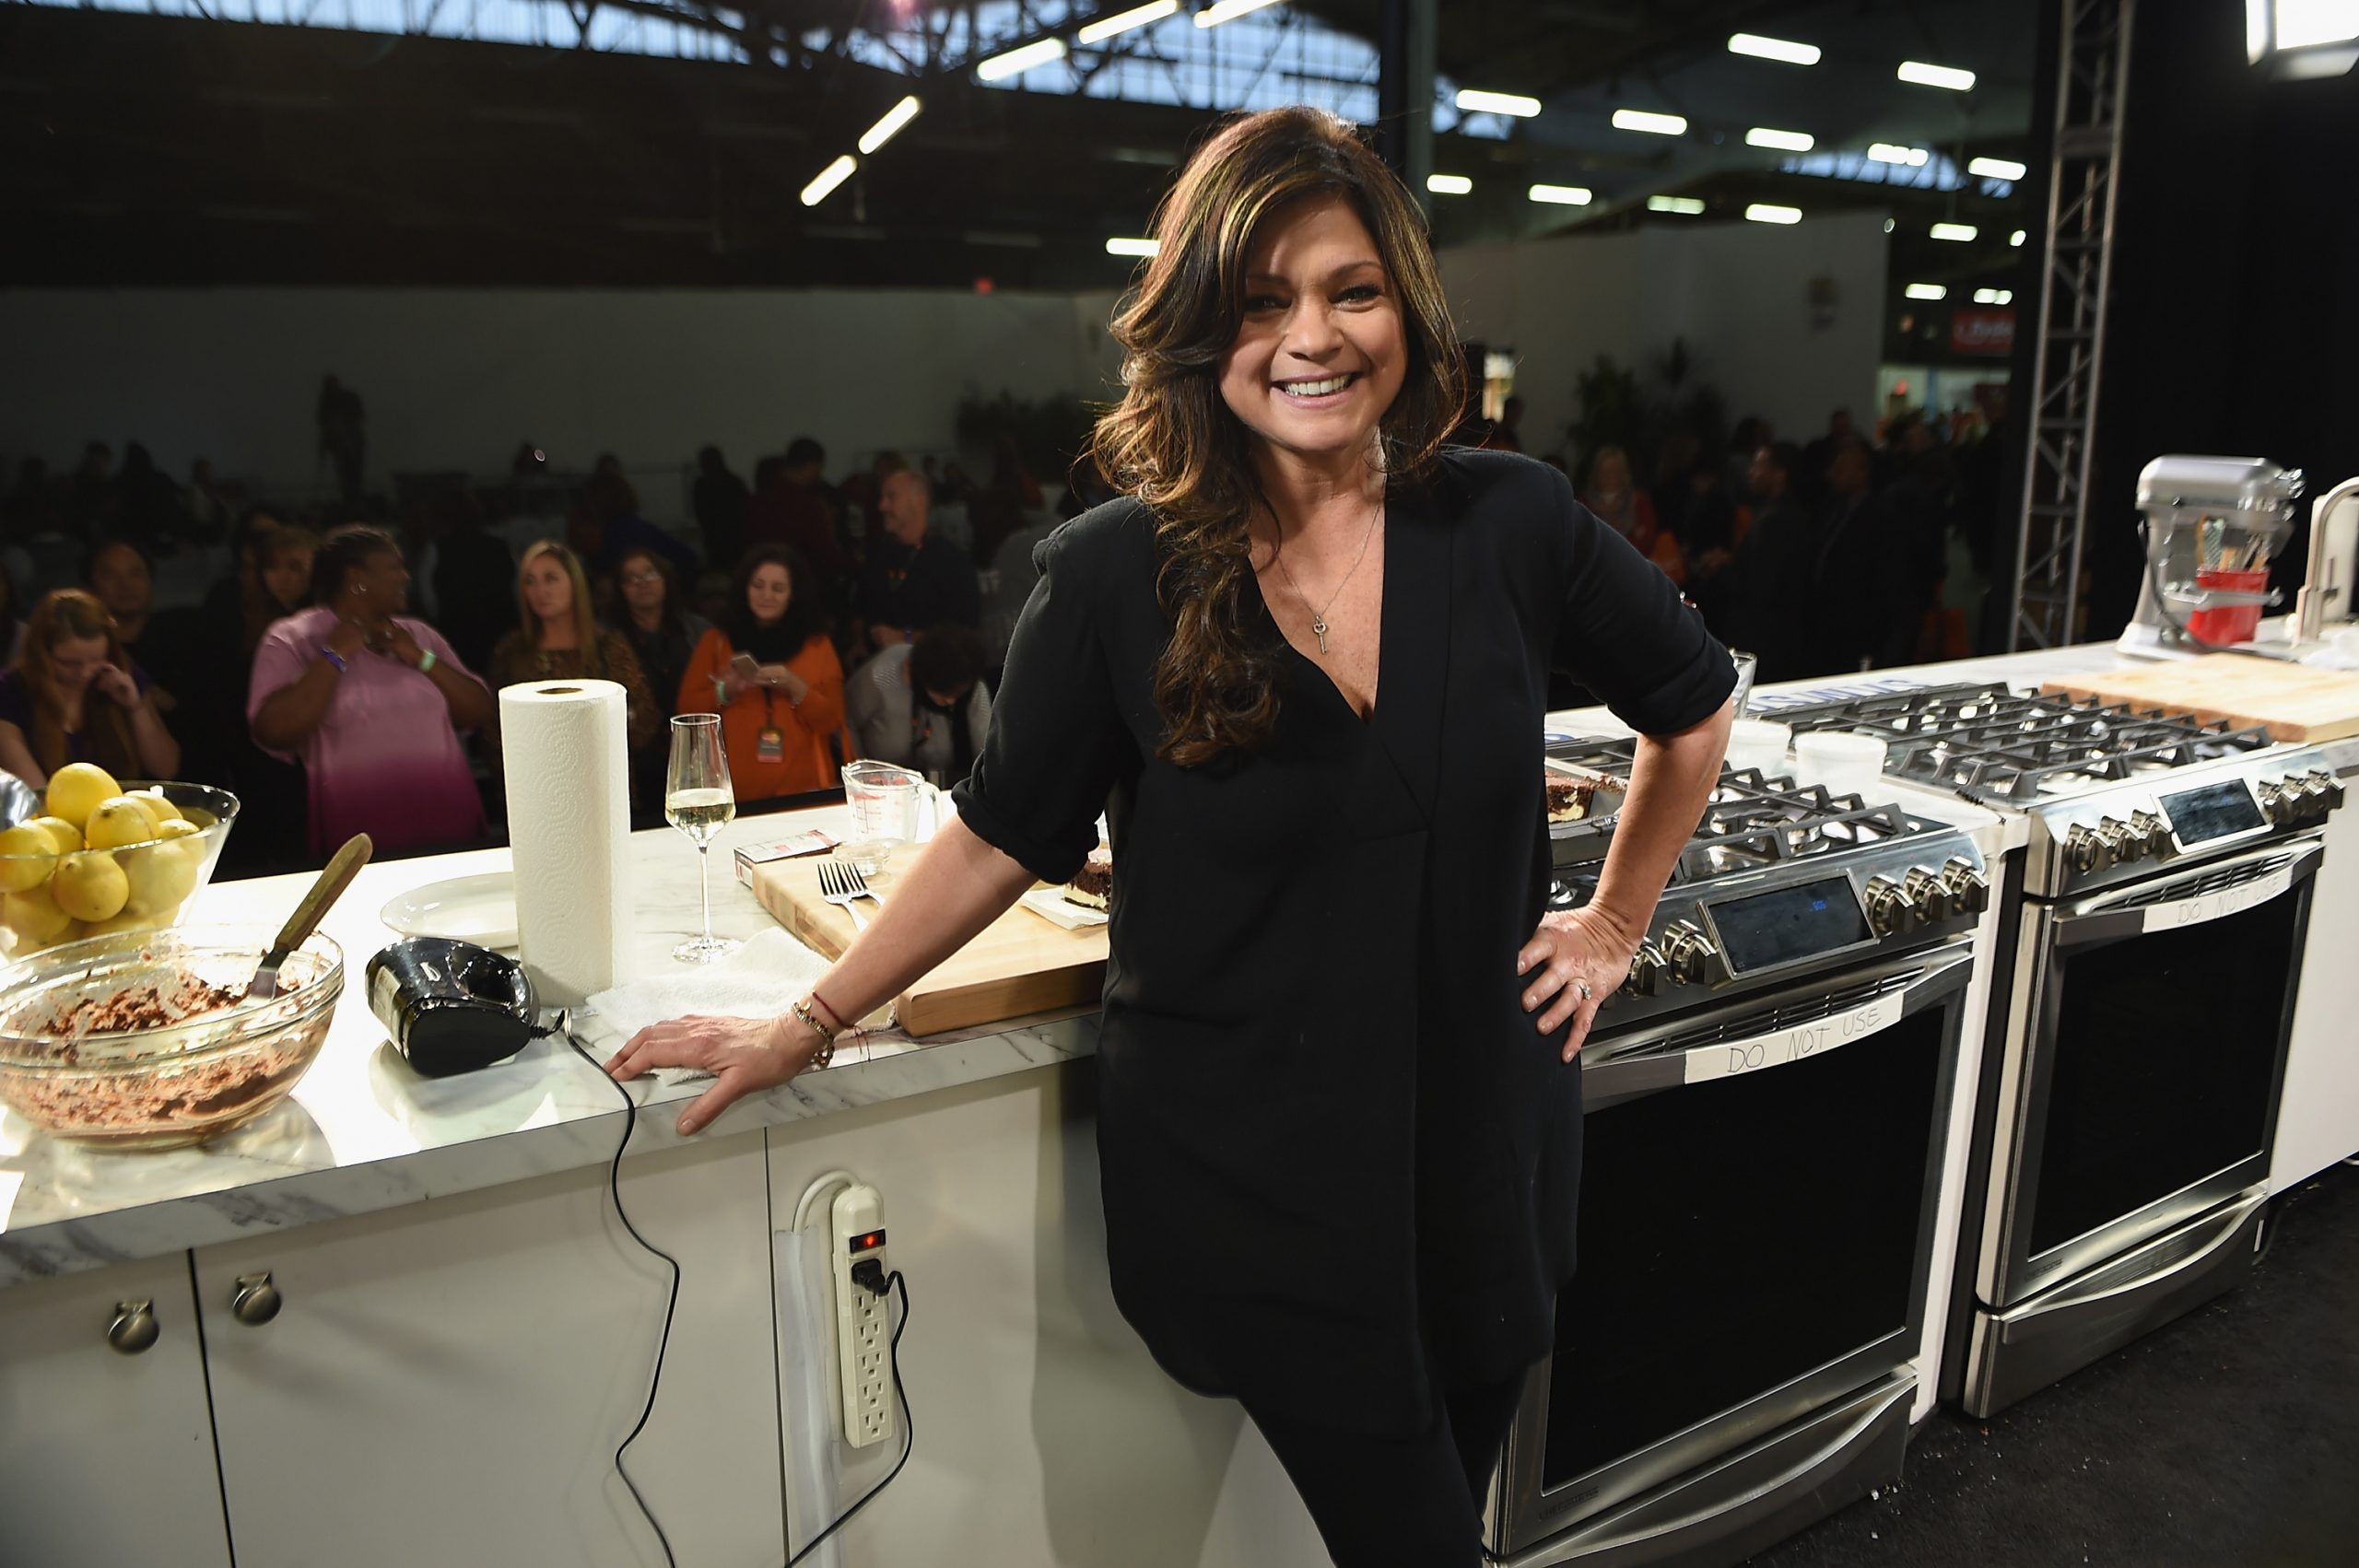 Food Network personality Valerie Bertinelli takes a break from meal prep to pose for a photo.